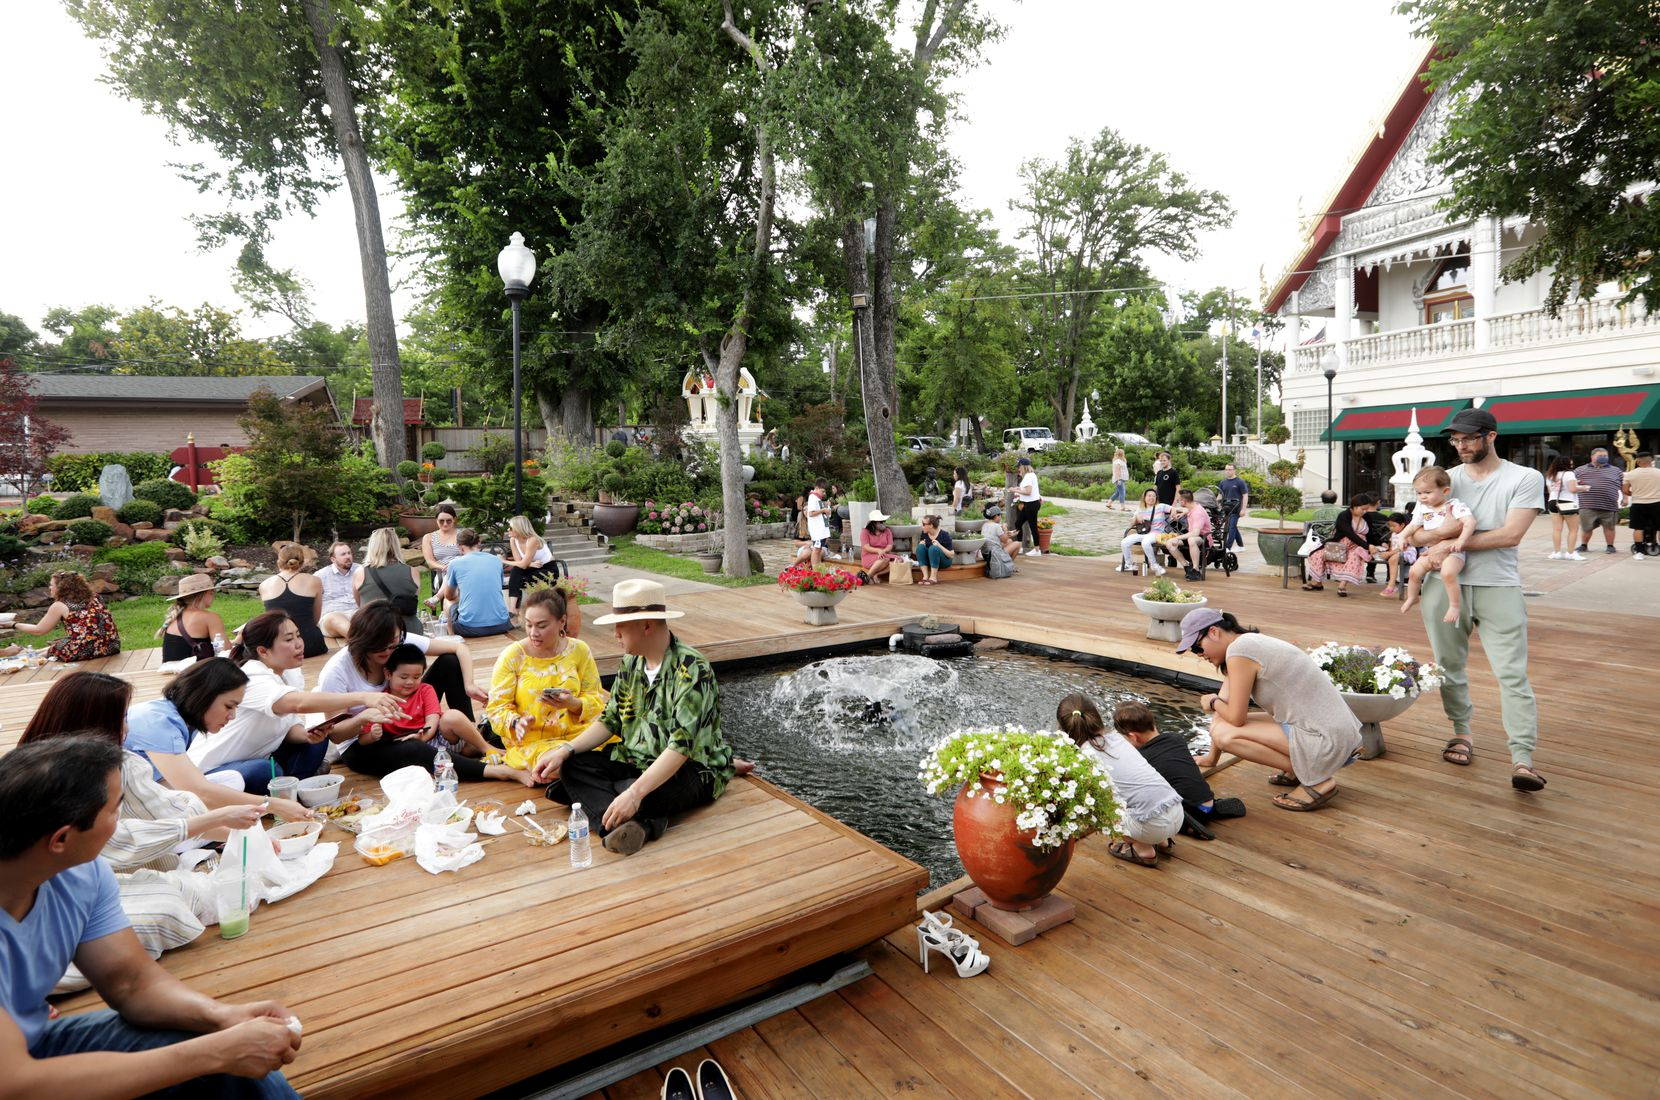 Guests enjoy the food and atmosphere during the Sunday Thai Food Market.